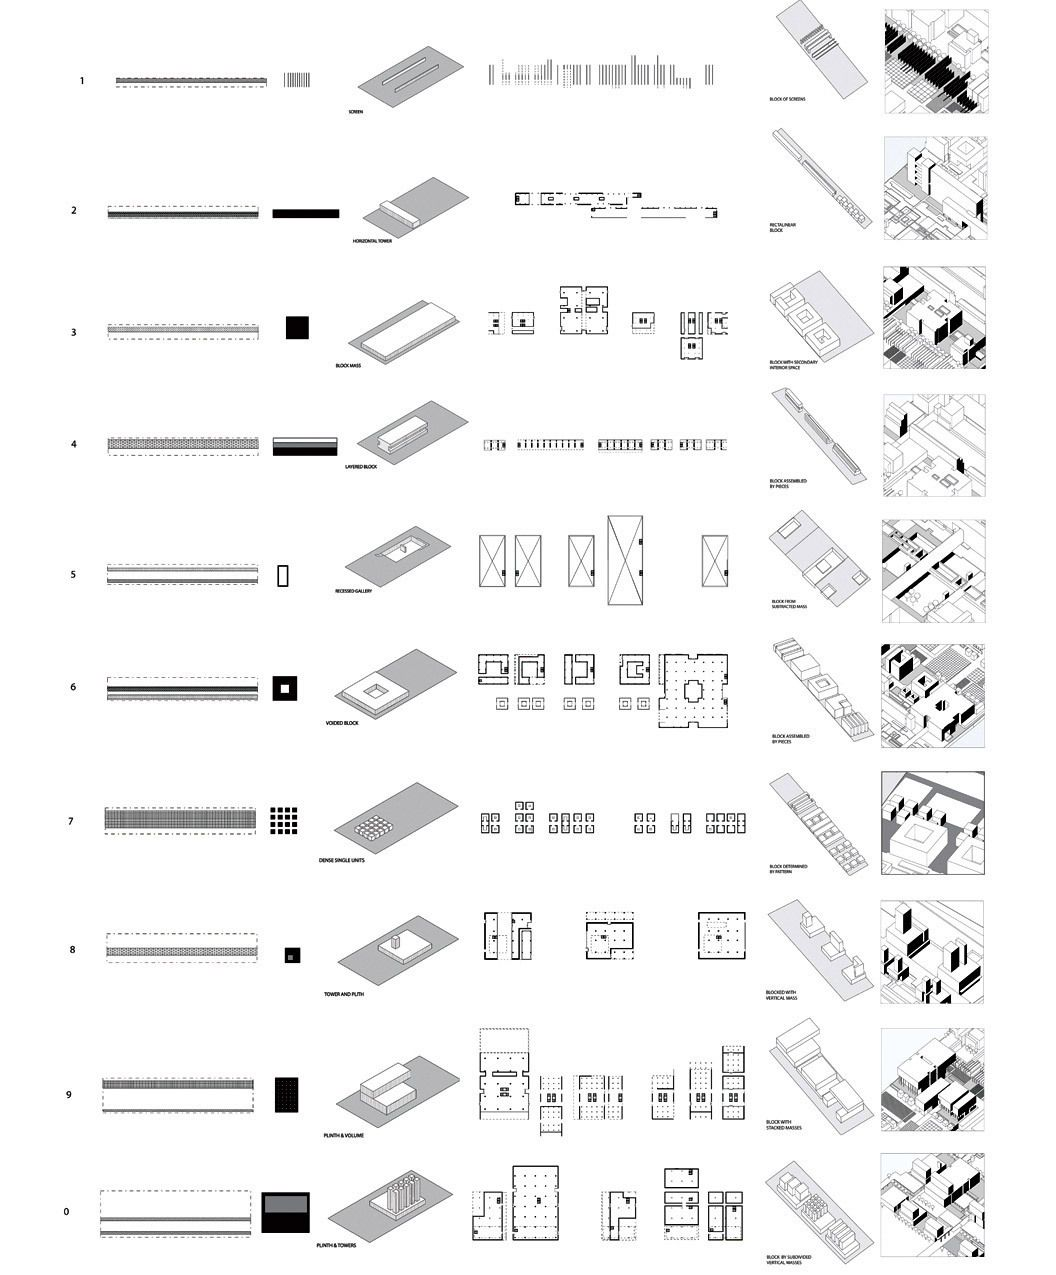 medium resolution of ungers 2 building typology diagrams